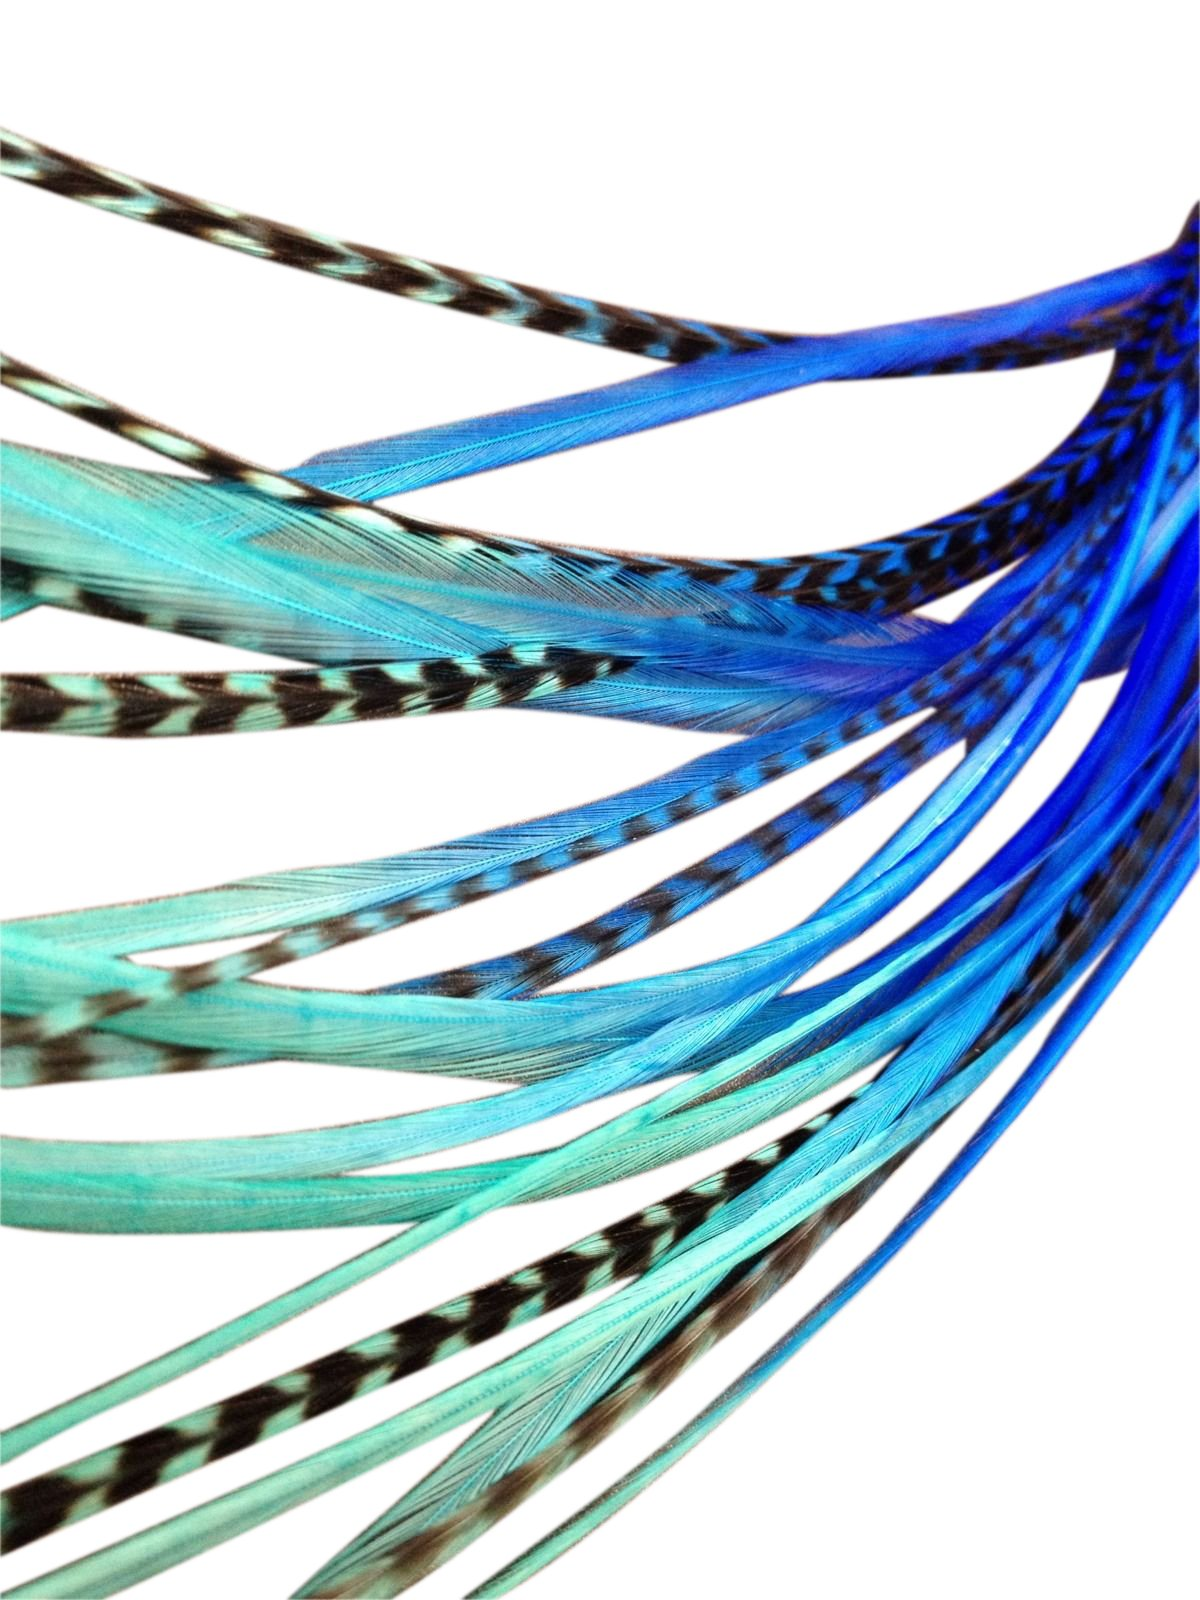 Feather Hair Extensions, 100% Real Rooster Feathers, 20 Long Thin Loose Individual Feathers, By Feather Lily